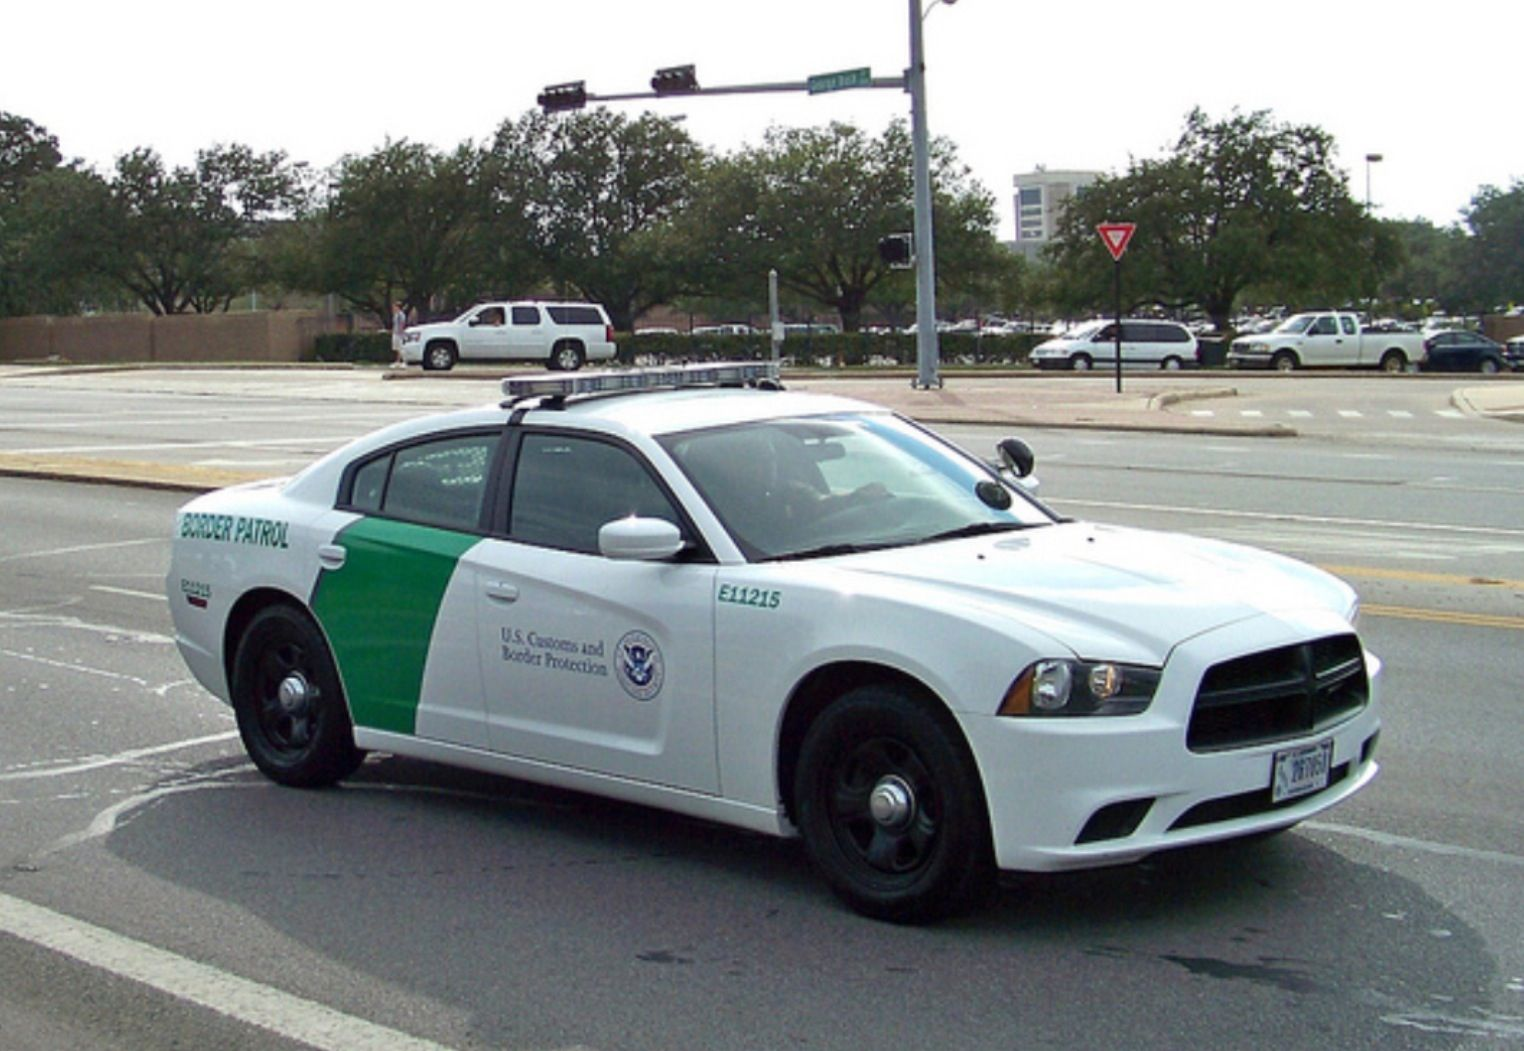 U S Border Patrol Dodge Charger Emergency Vehicles Us Police Car Police Cars